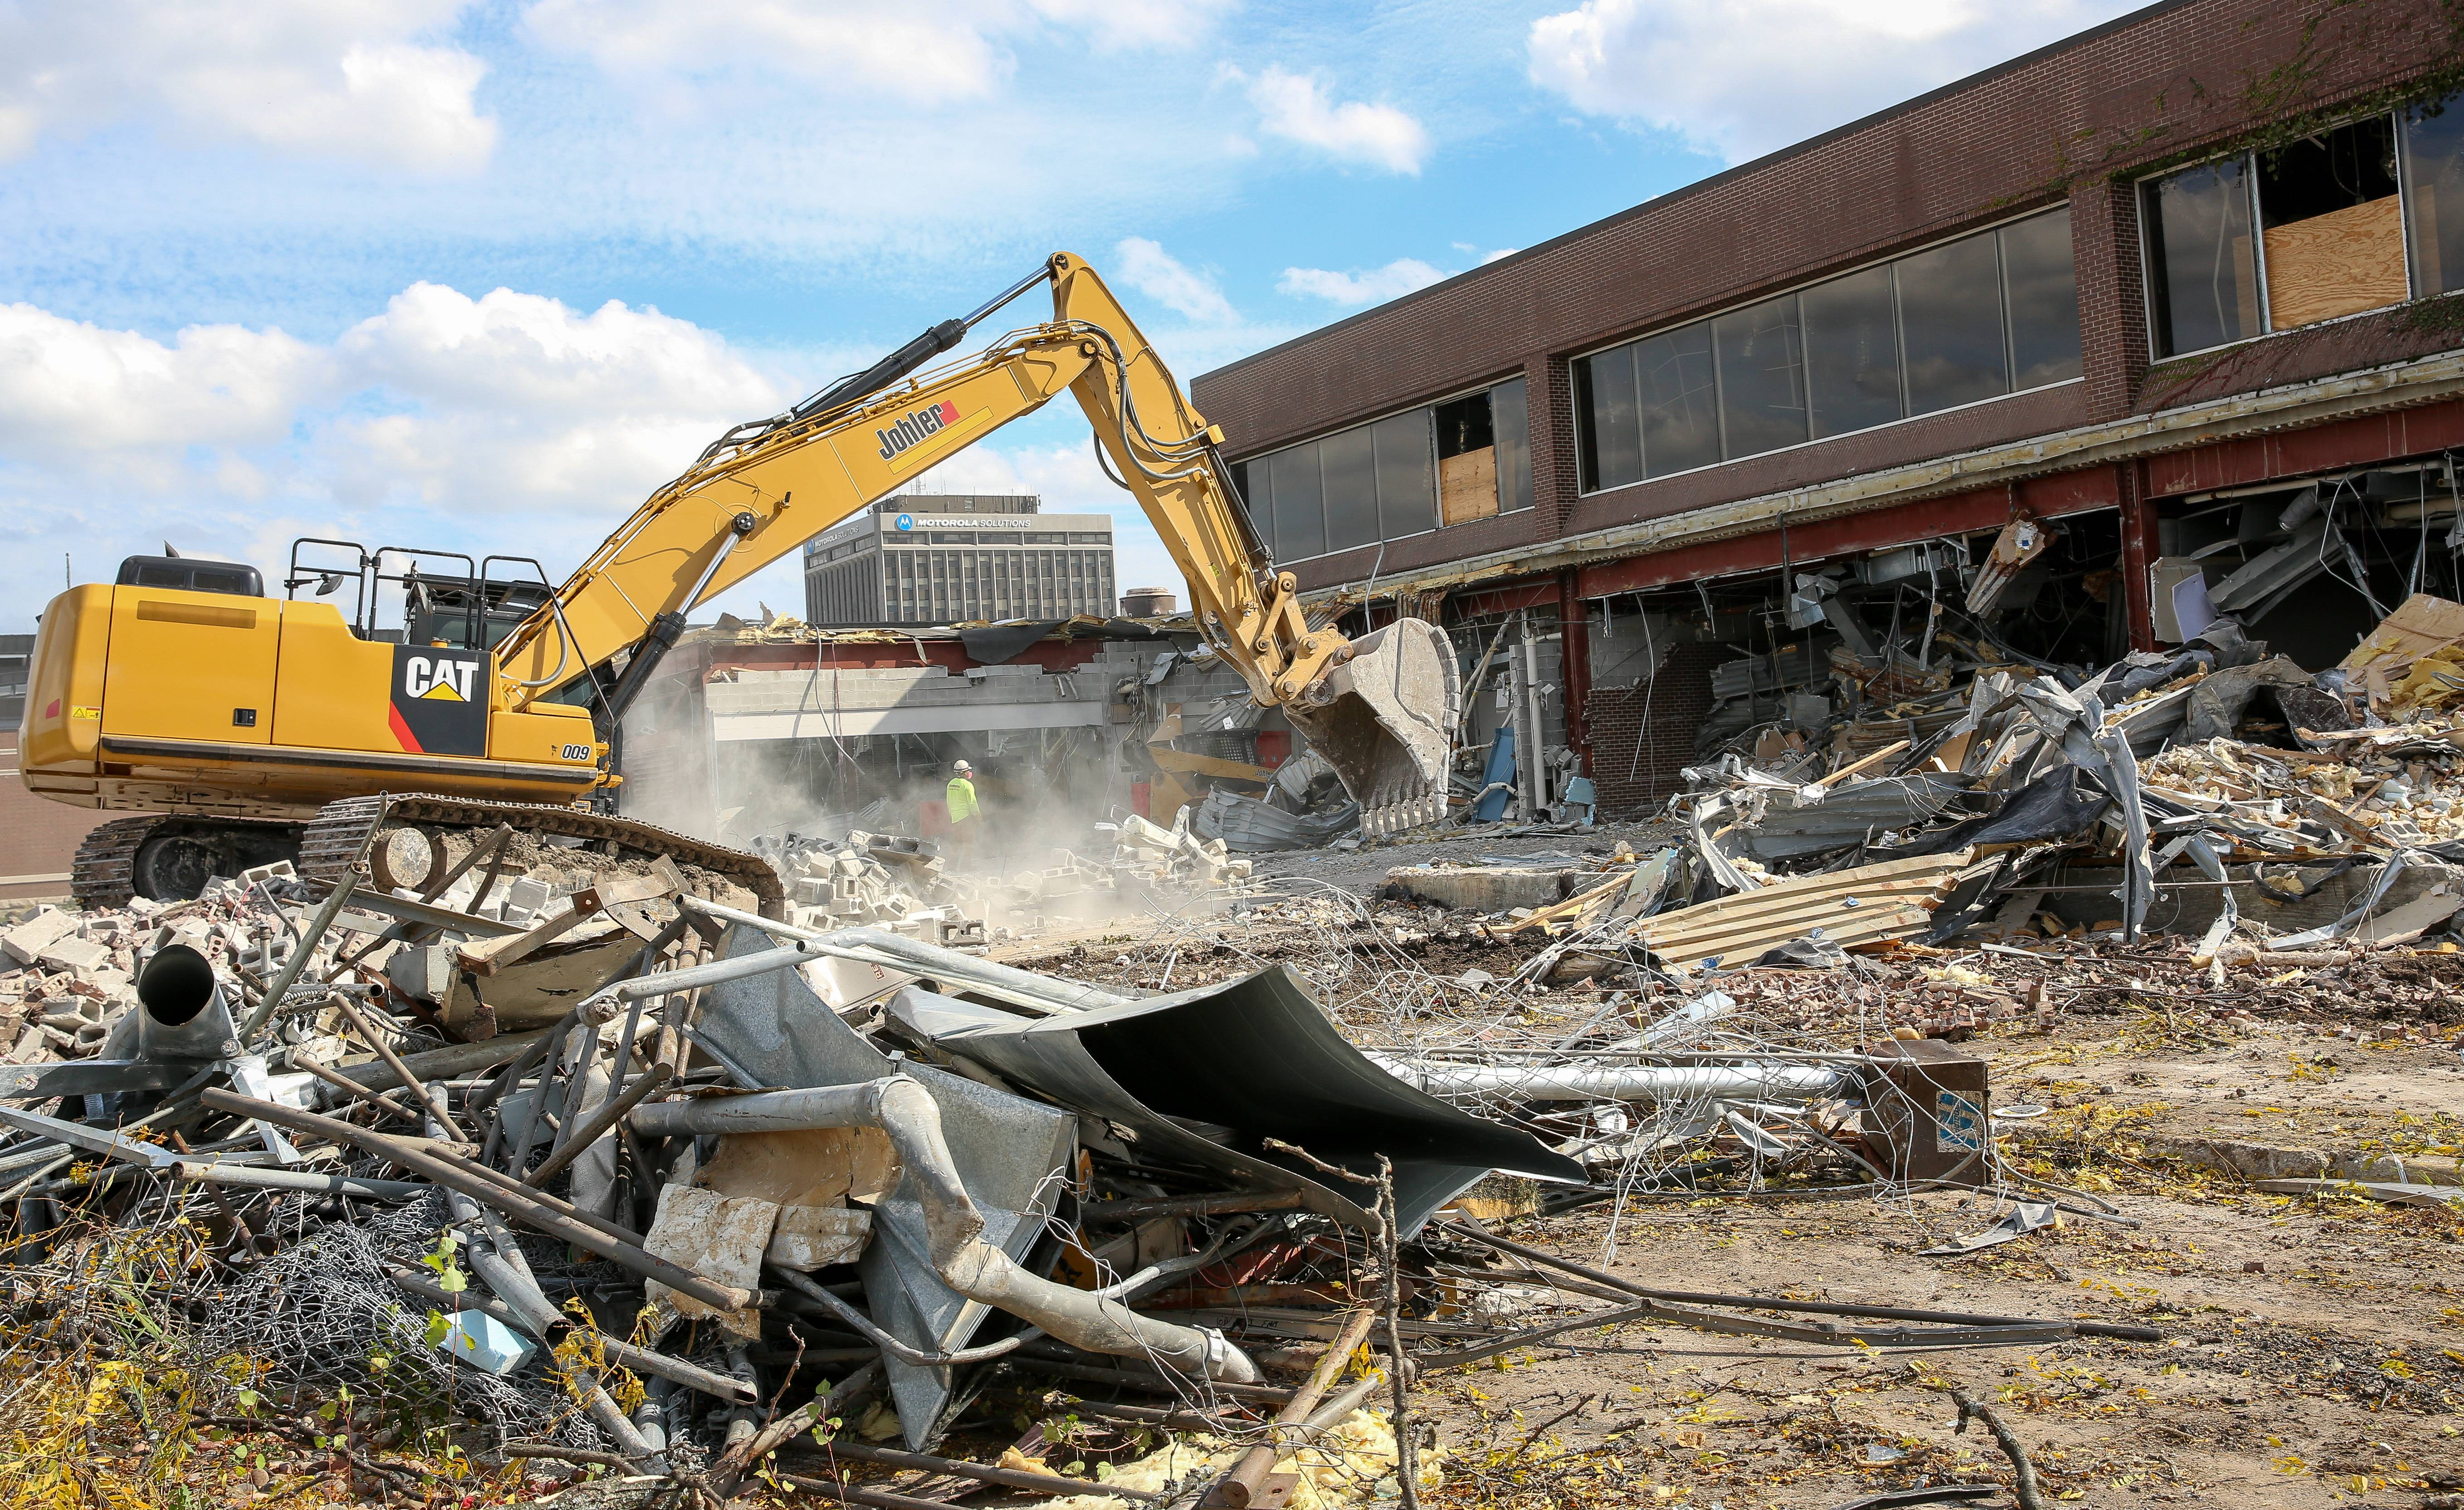 Demolition of the Galvin Center -- where Motorola Solutions once had its company museum, training center and client interaction -- continues Wednesday. It is the first major Motorola building to be razed as part of a massive redevelopment of the 260-acre former corporate campus.